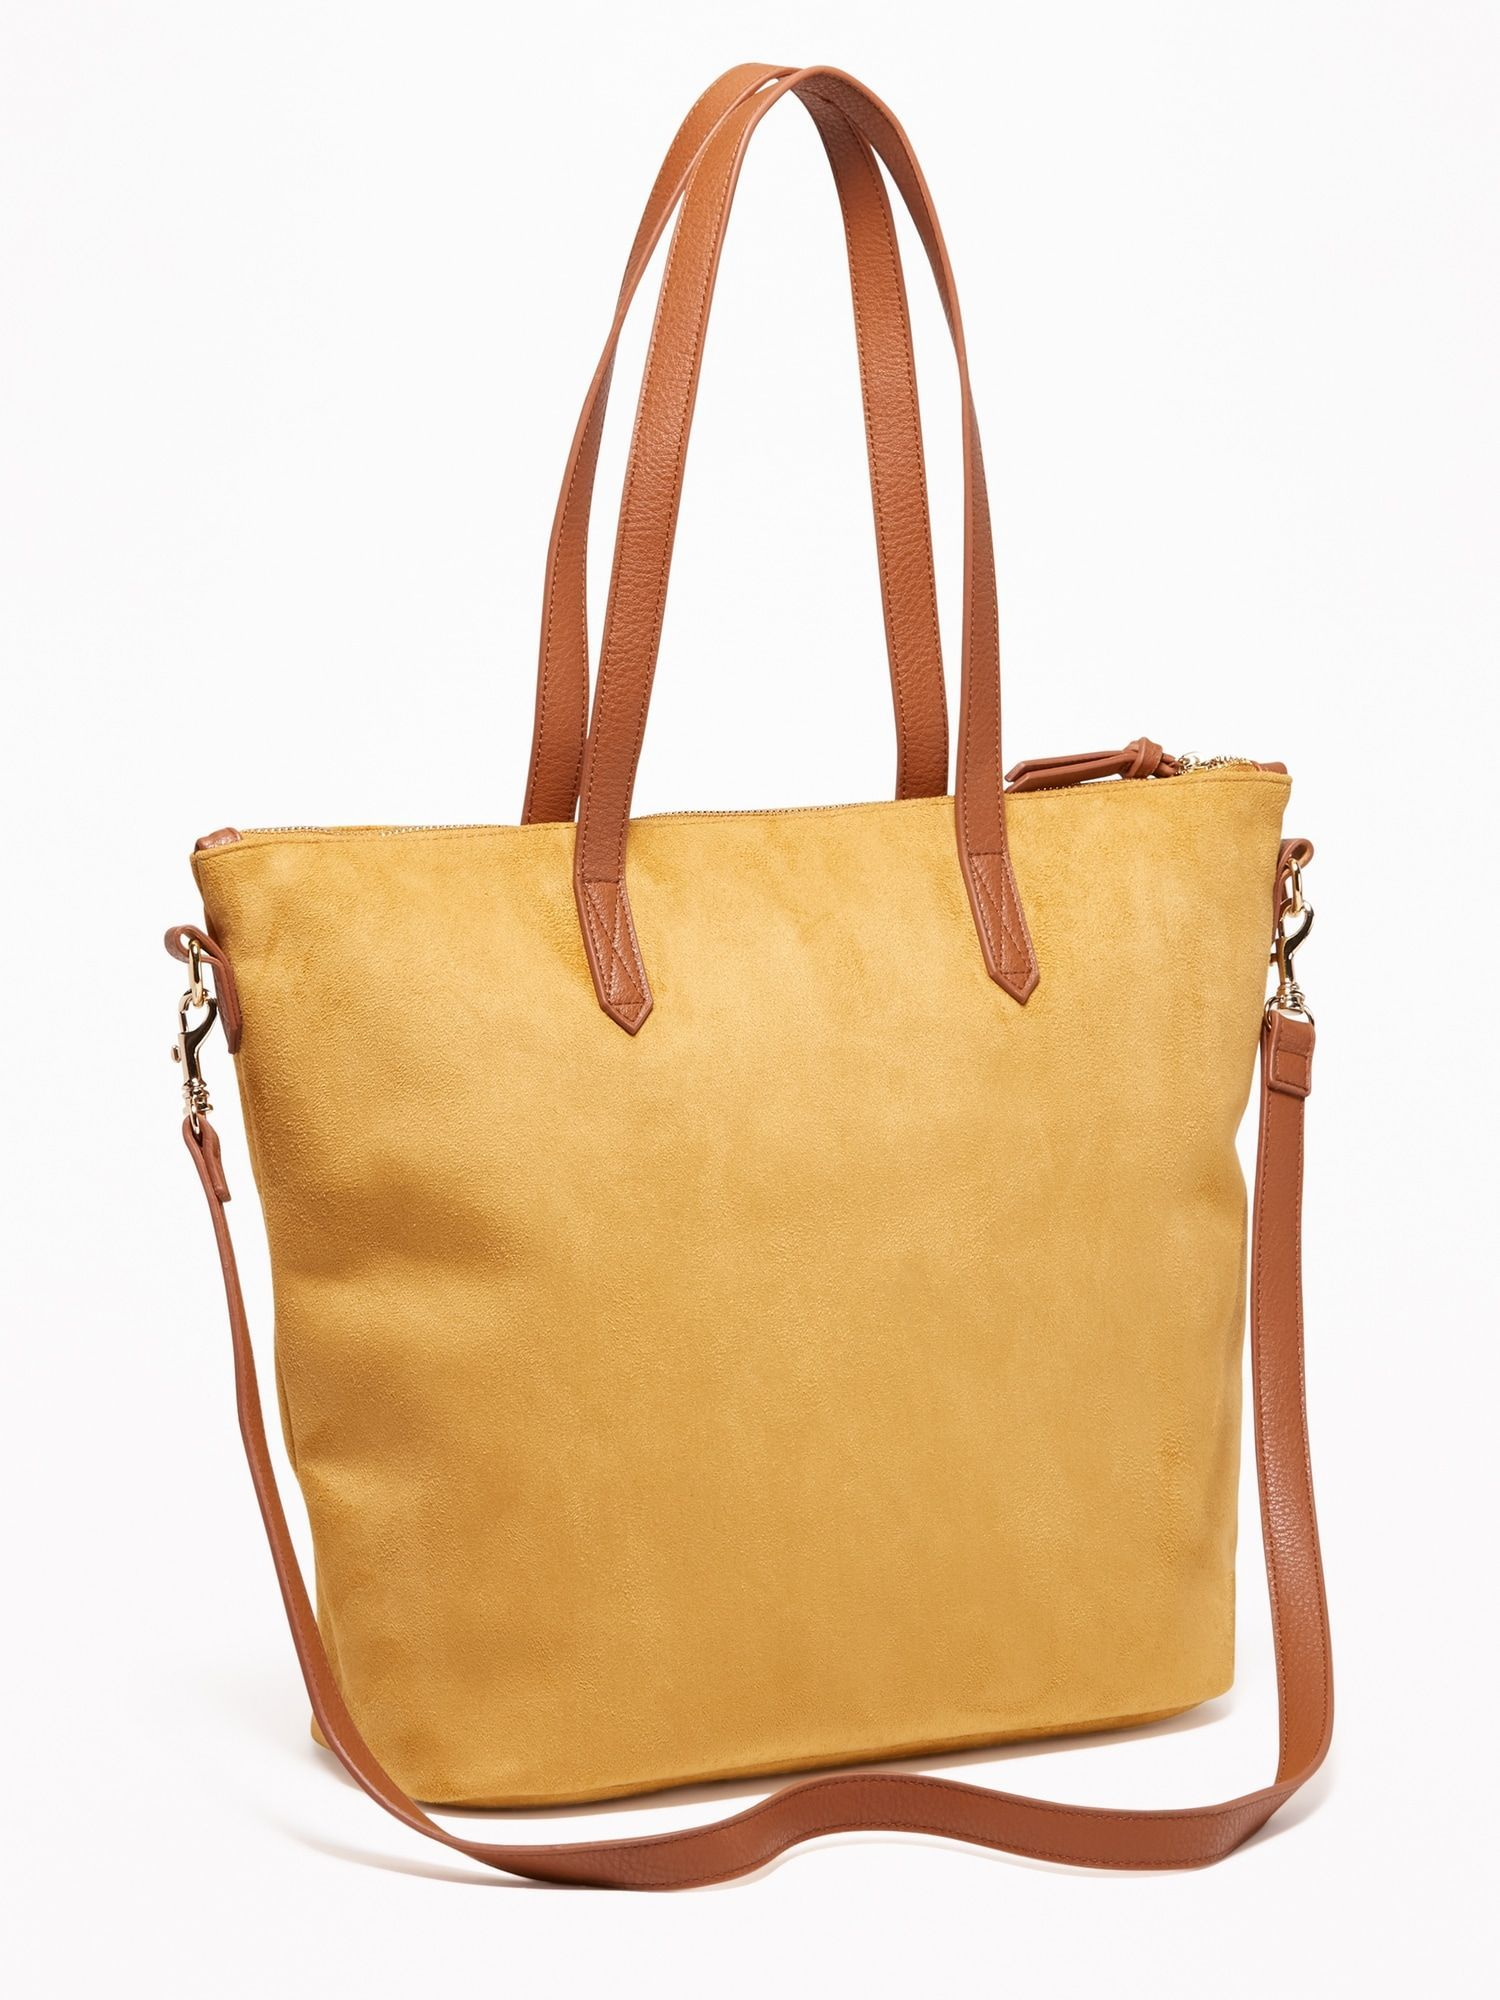 Faux-Suede Zip-Top Tote for Women   Old Navy  nylonziptoptotebag ... 68c0d3ccb0